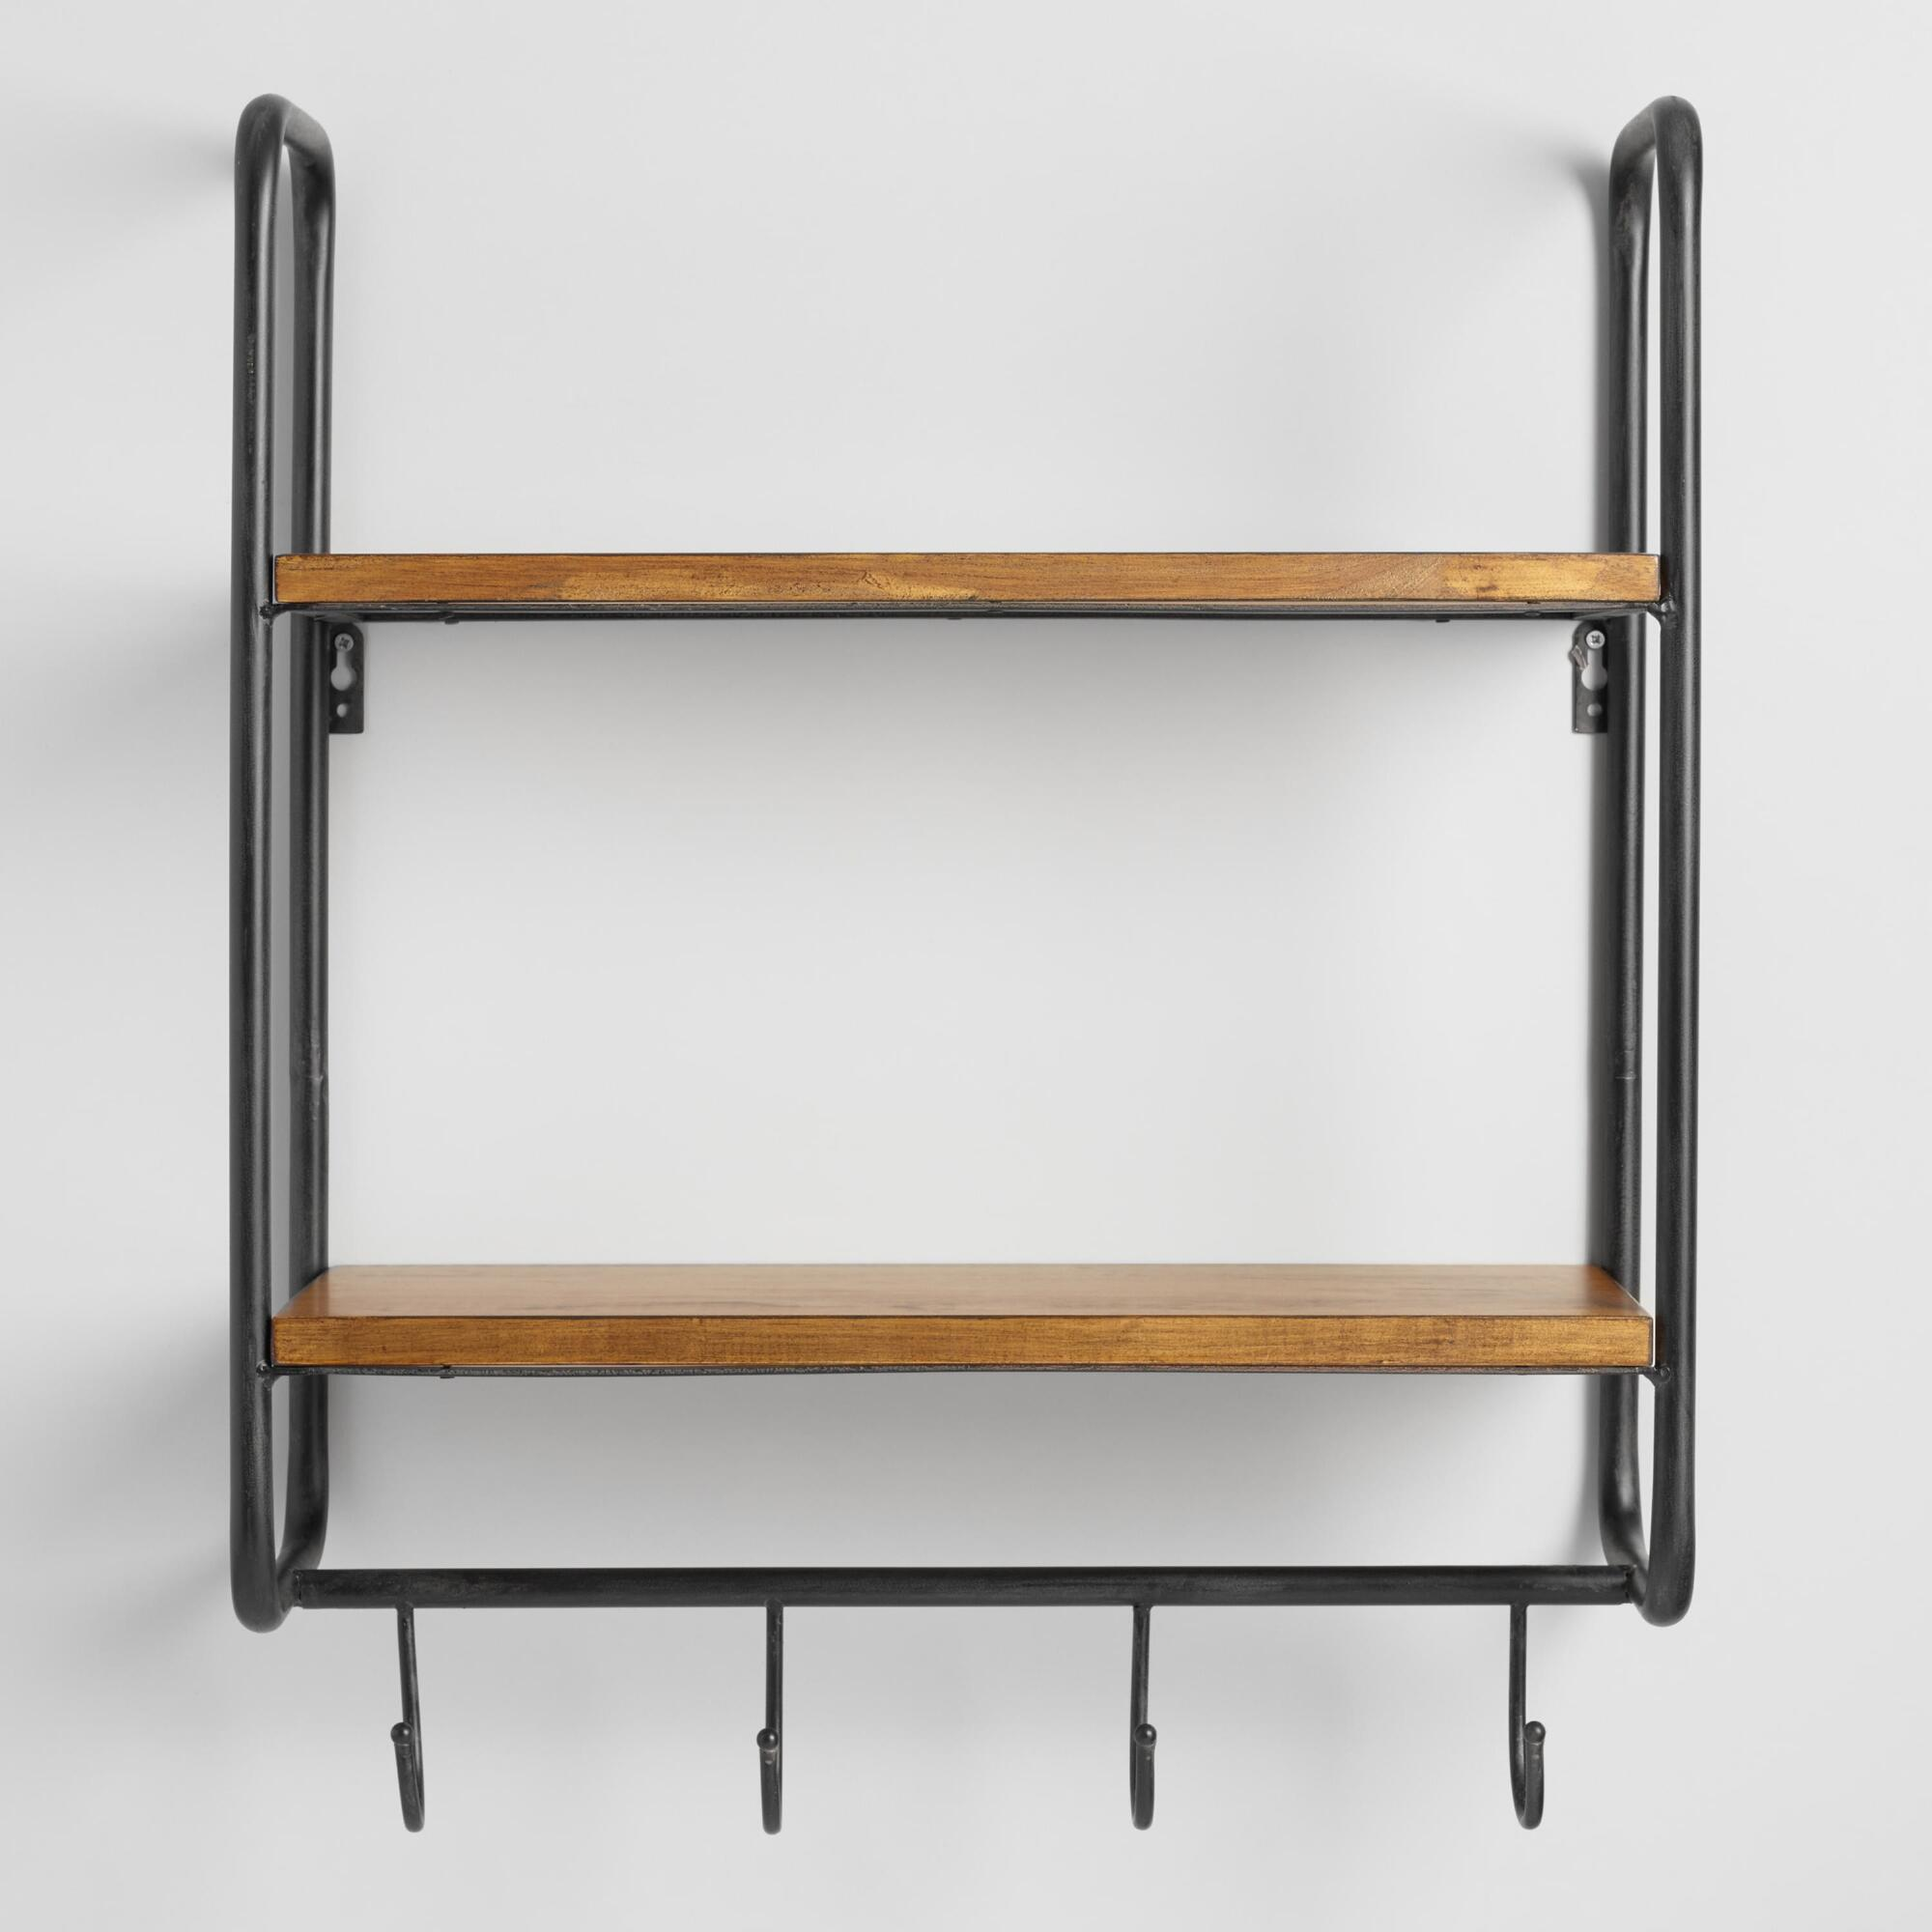 Metal and wood skyler 2 shelf wall storage world market - Wall metal shelf ...